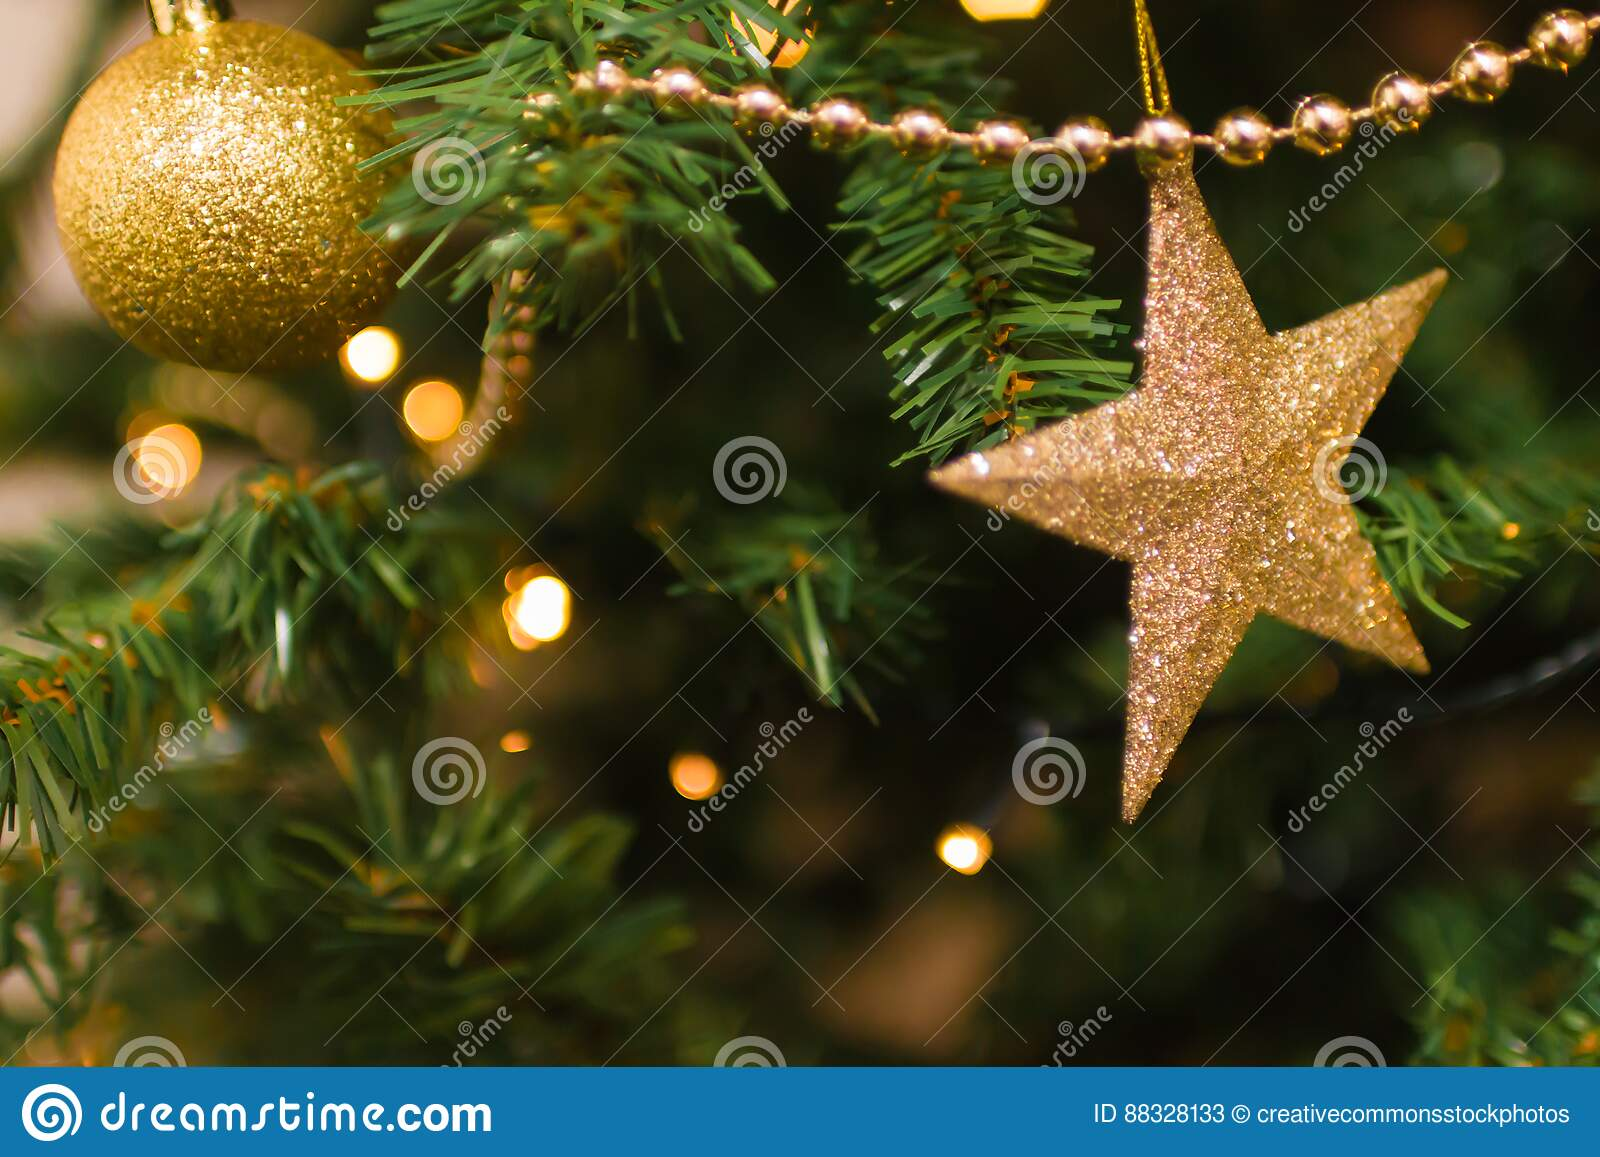 Gold Christmas Ornaments On Tree Picture Image 88328133